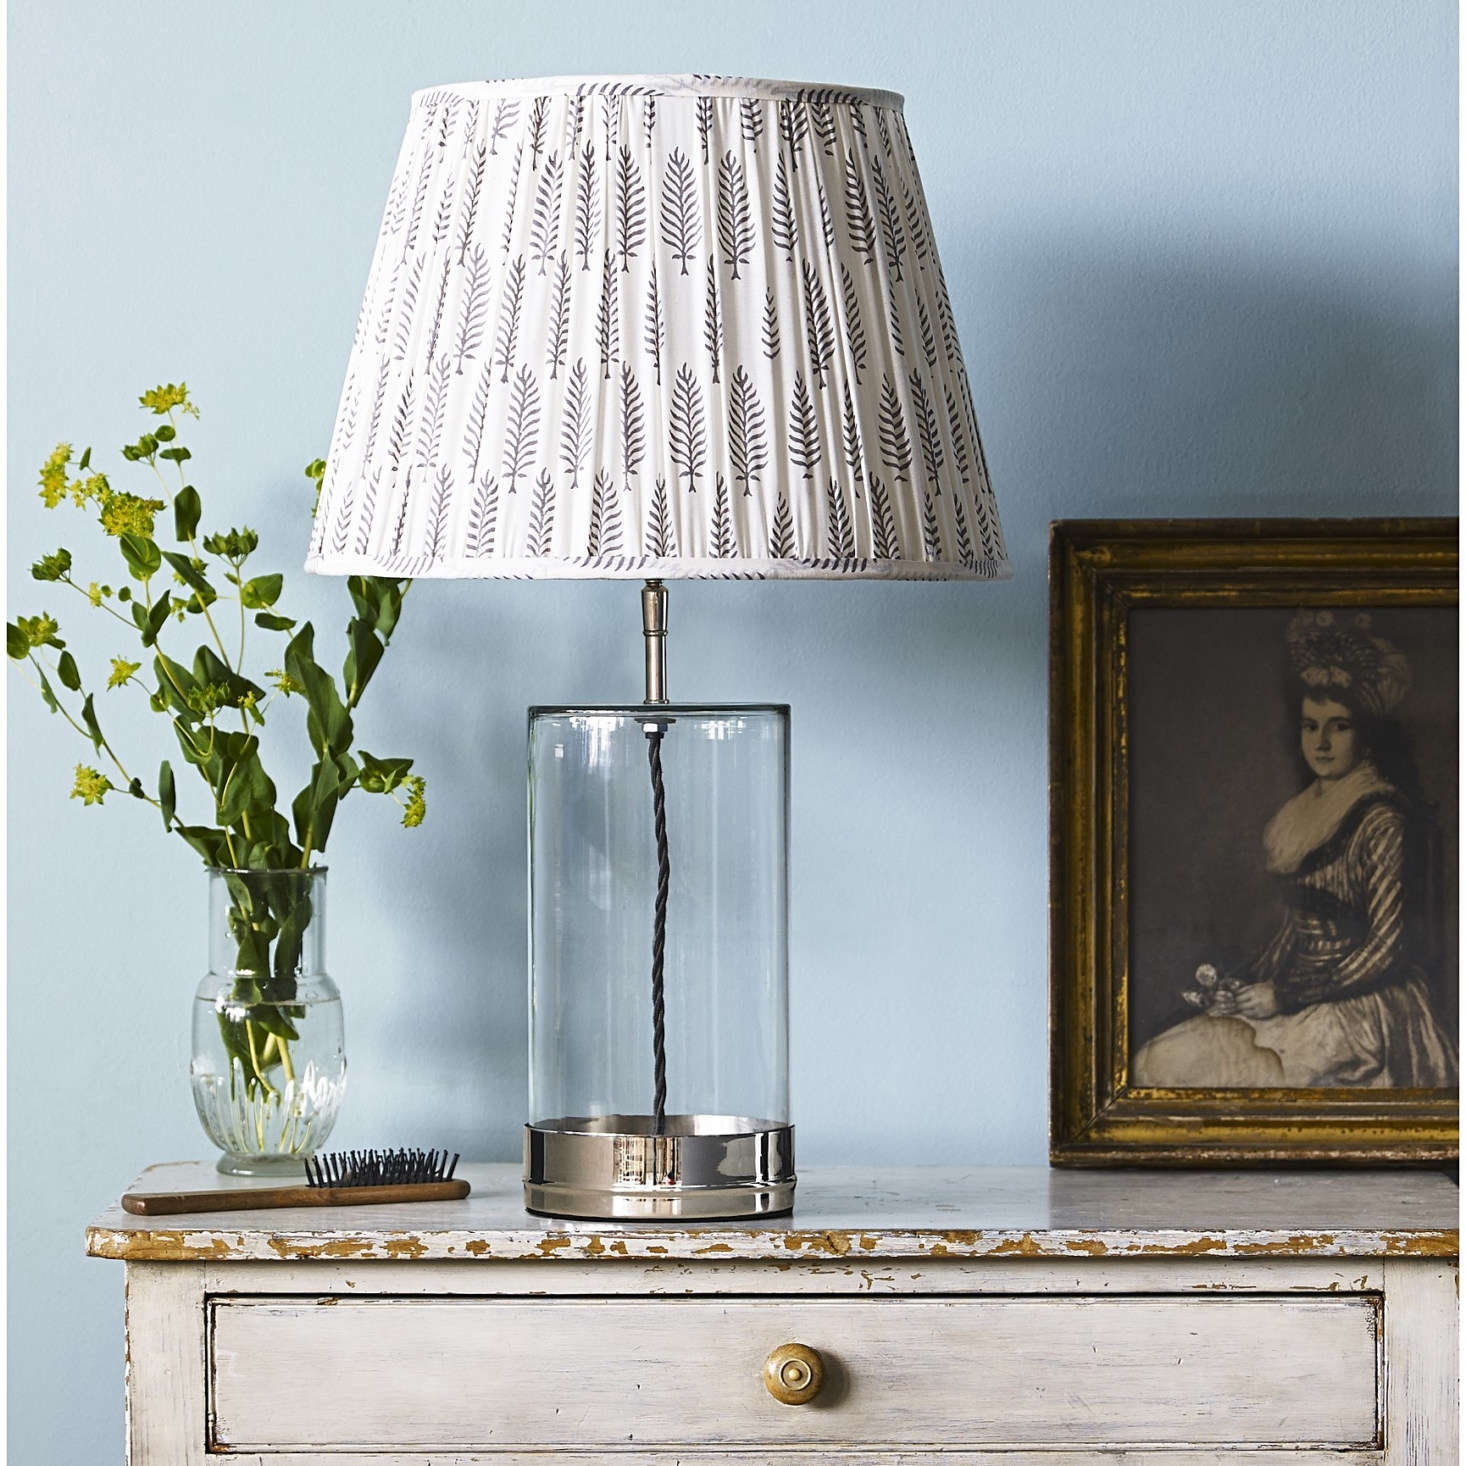 Wisteria table lamp from Pooky.